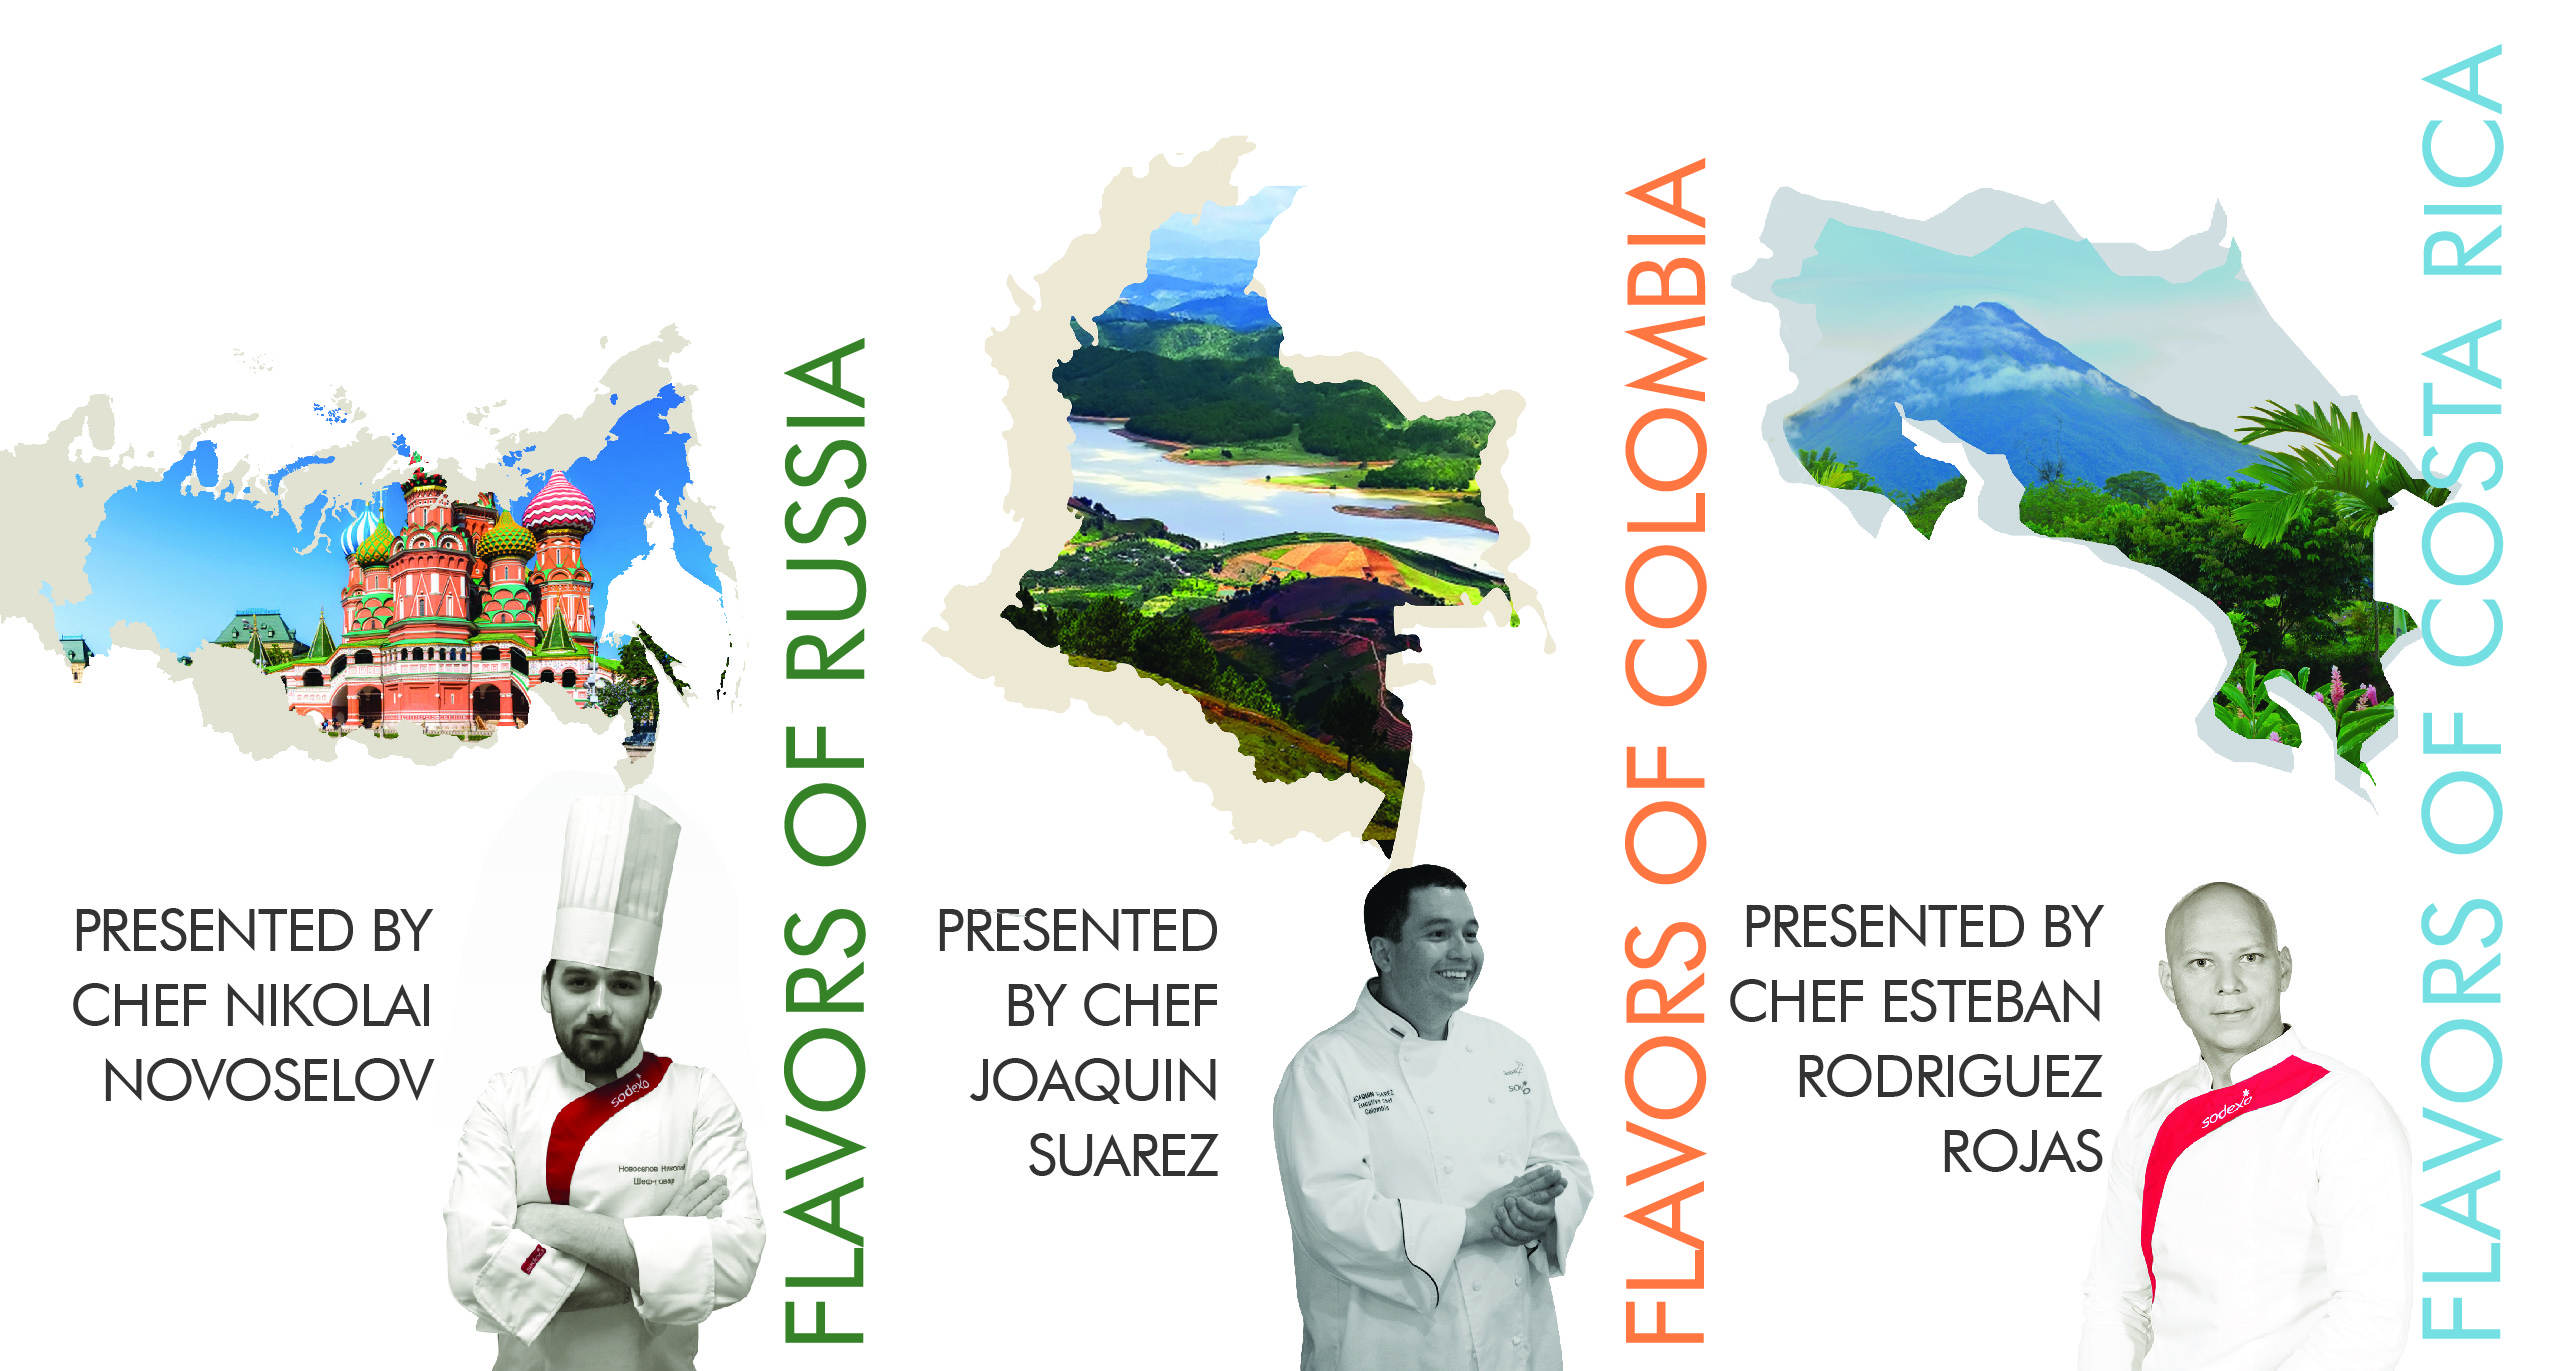 Flavors of Russia, Colombia, and Costa Rica